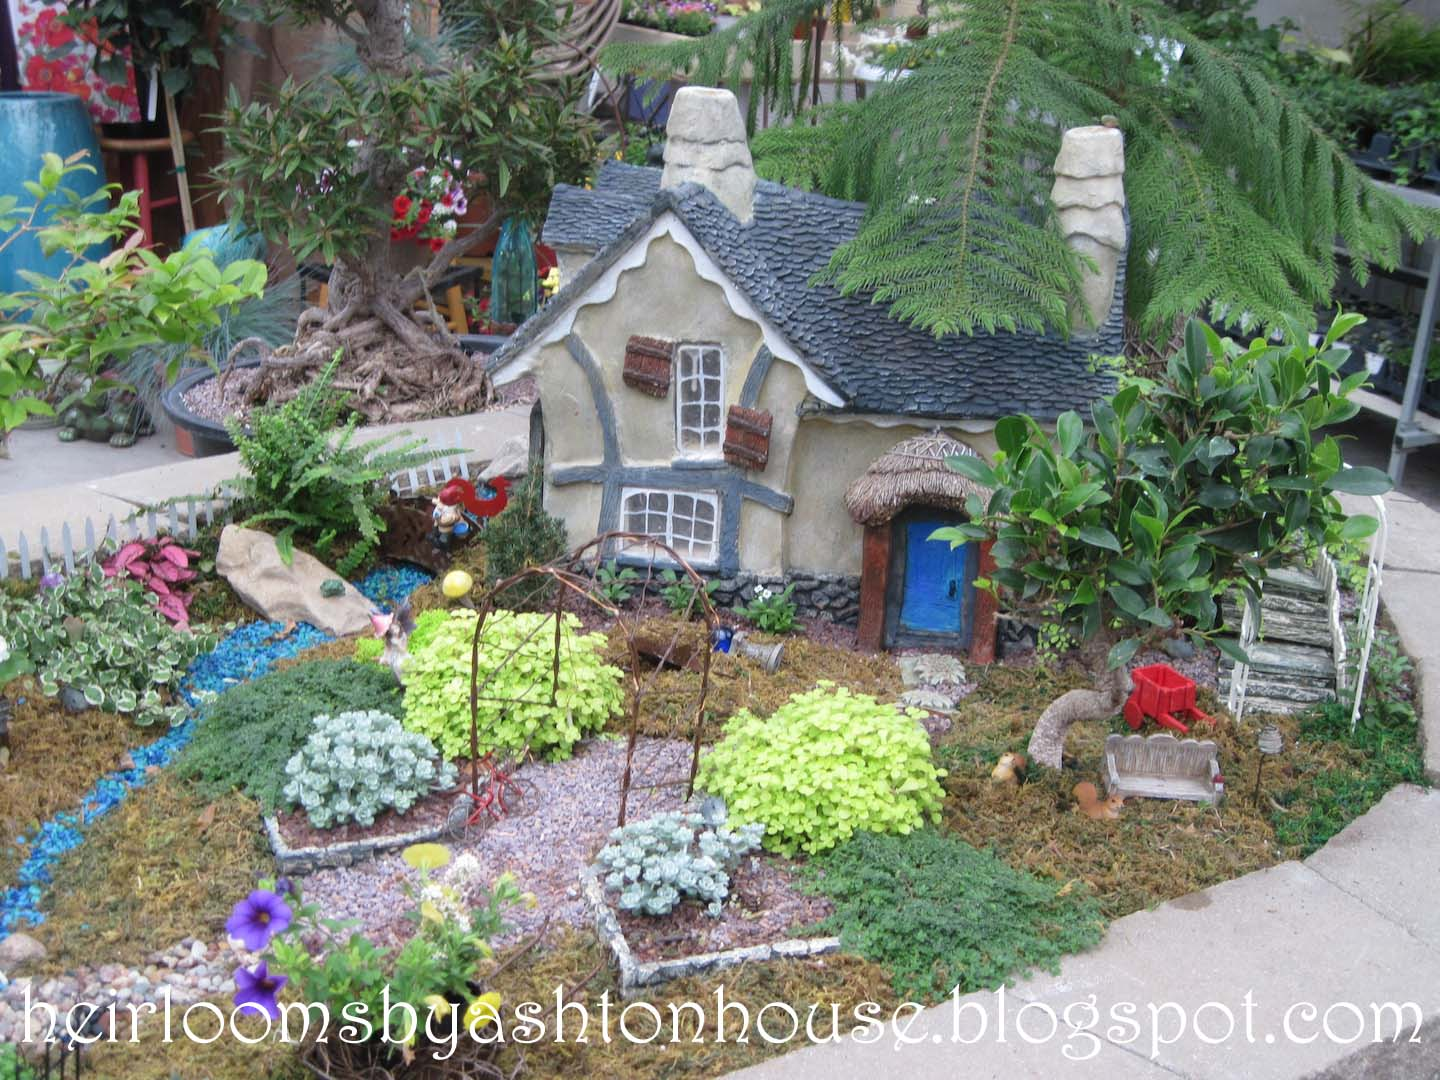 Heirlooms by ashton house magical miniature gardens for Mini garden landscape